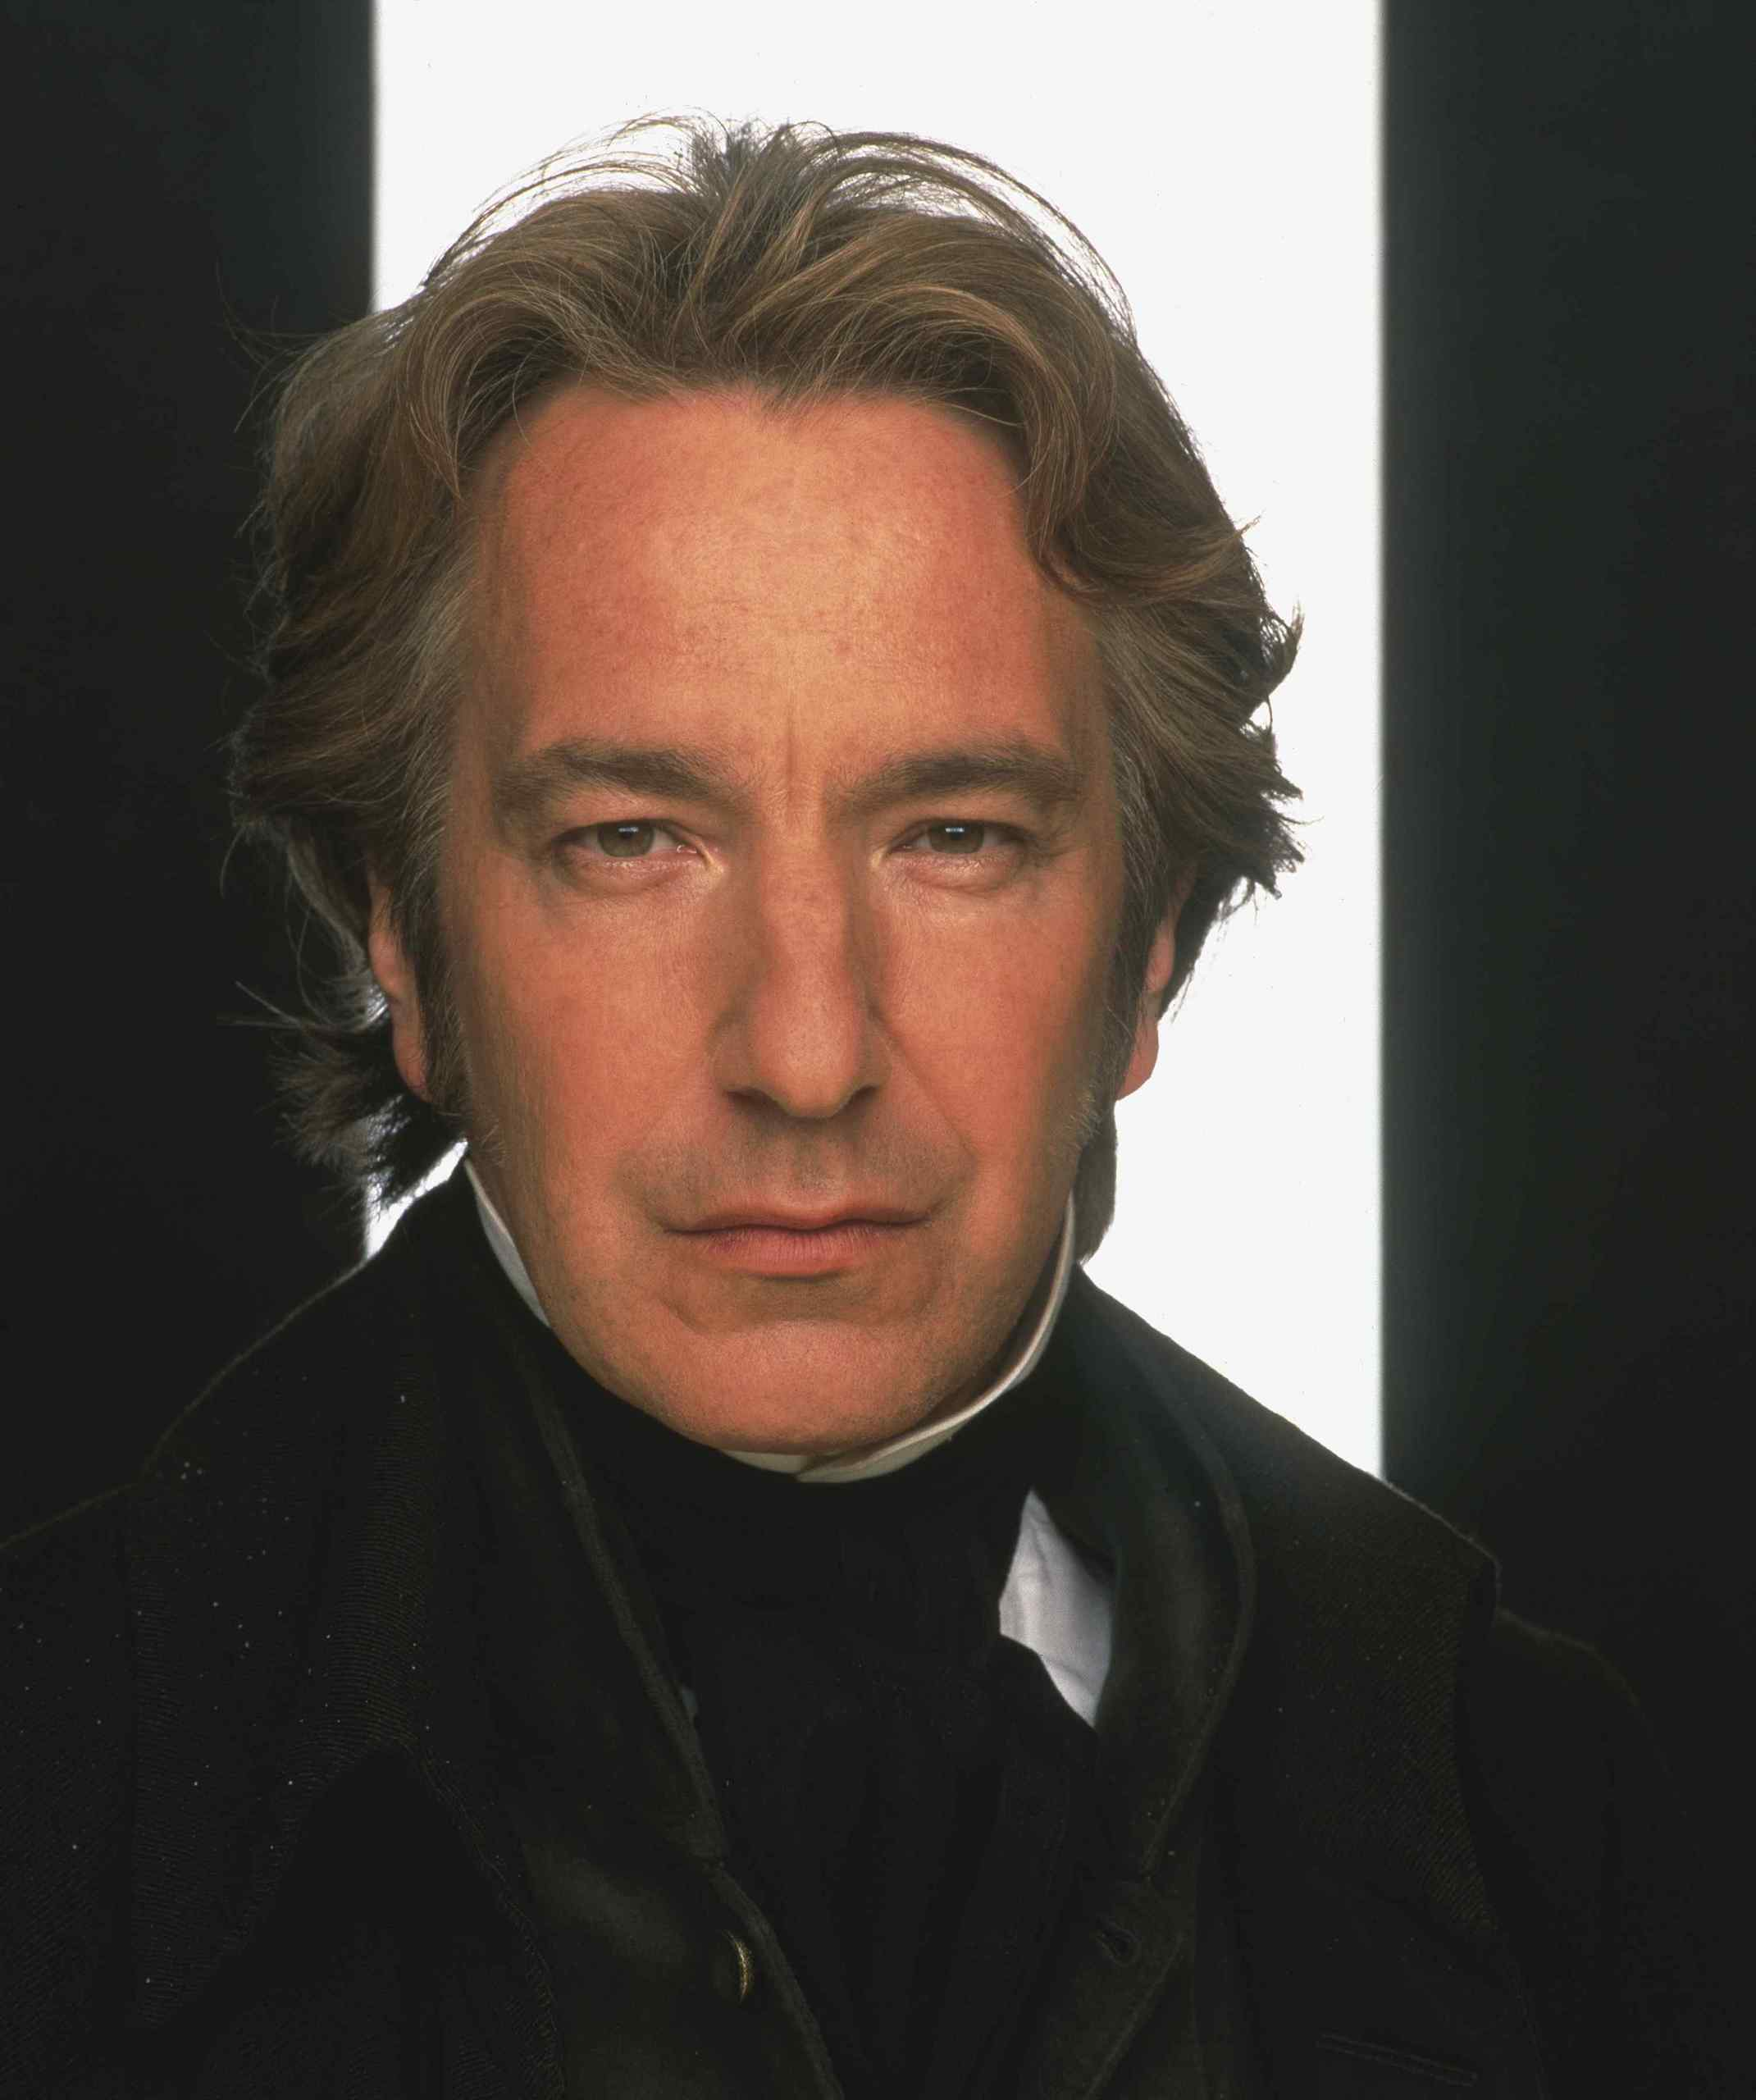 Alan Rickman photo gallery - 54 high quality pics of Alan ...